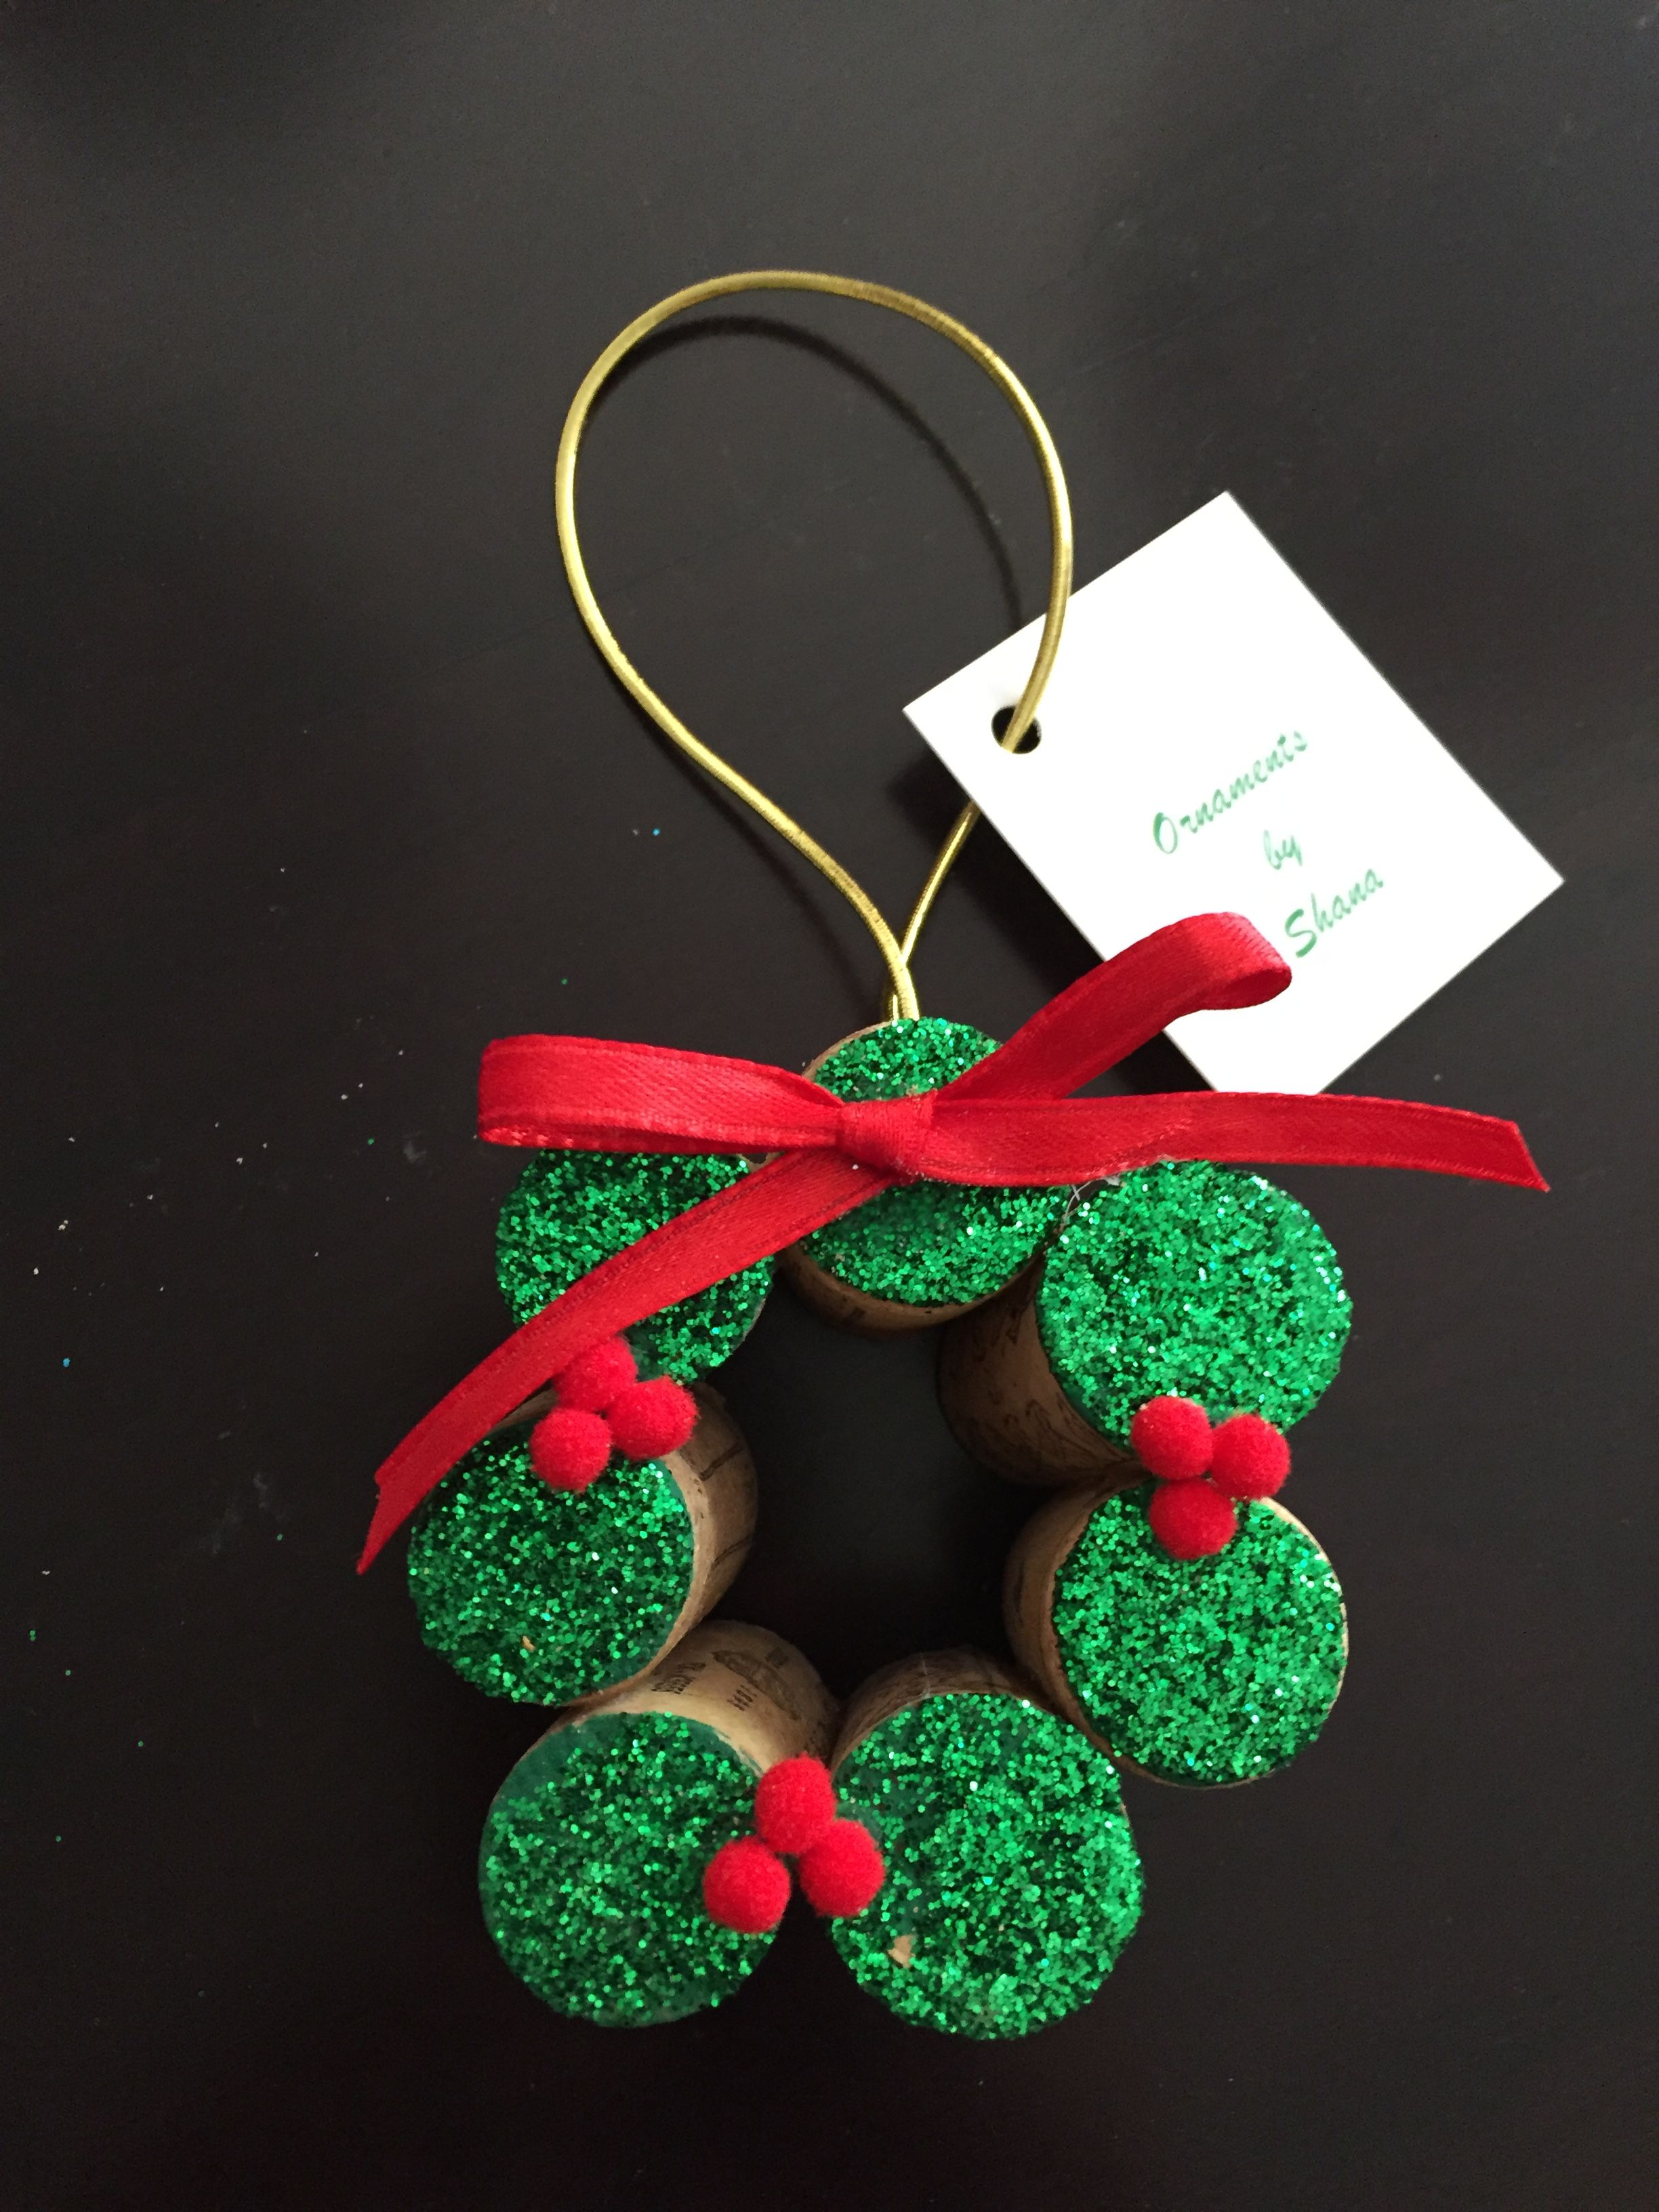 Pin By Deborah Newell On Wine Cork Projects Horse Christmas Ornament Cork Crafts Christmas Wine Cork Ornaments